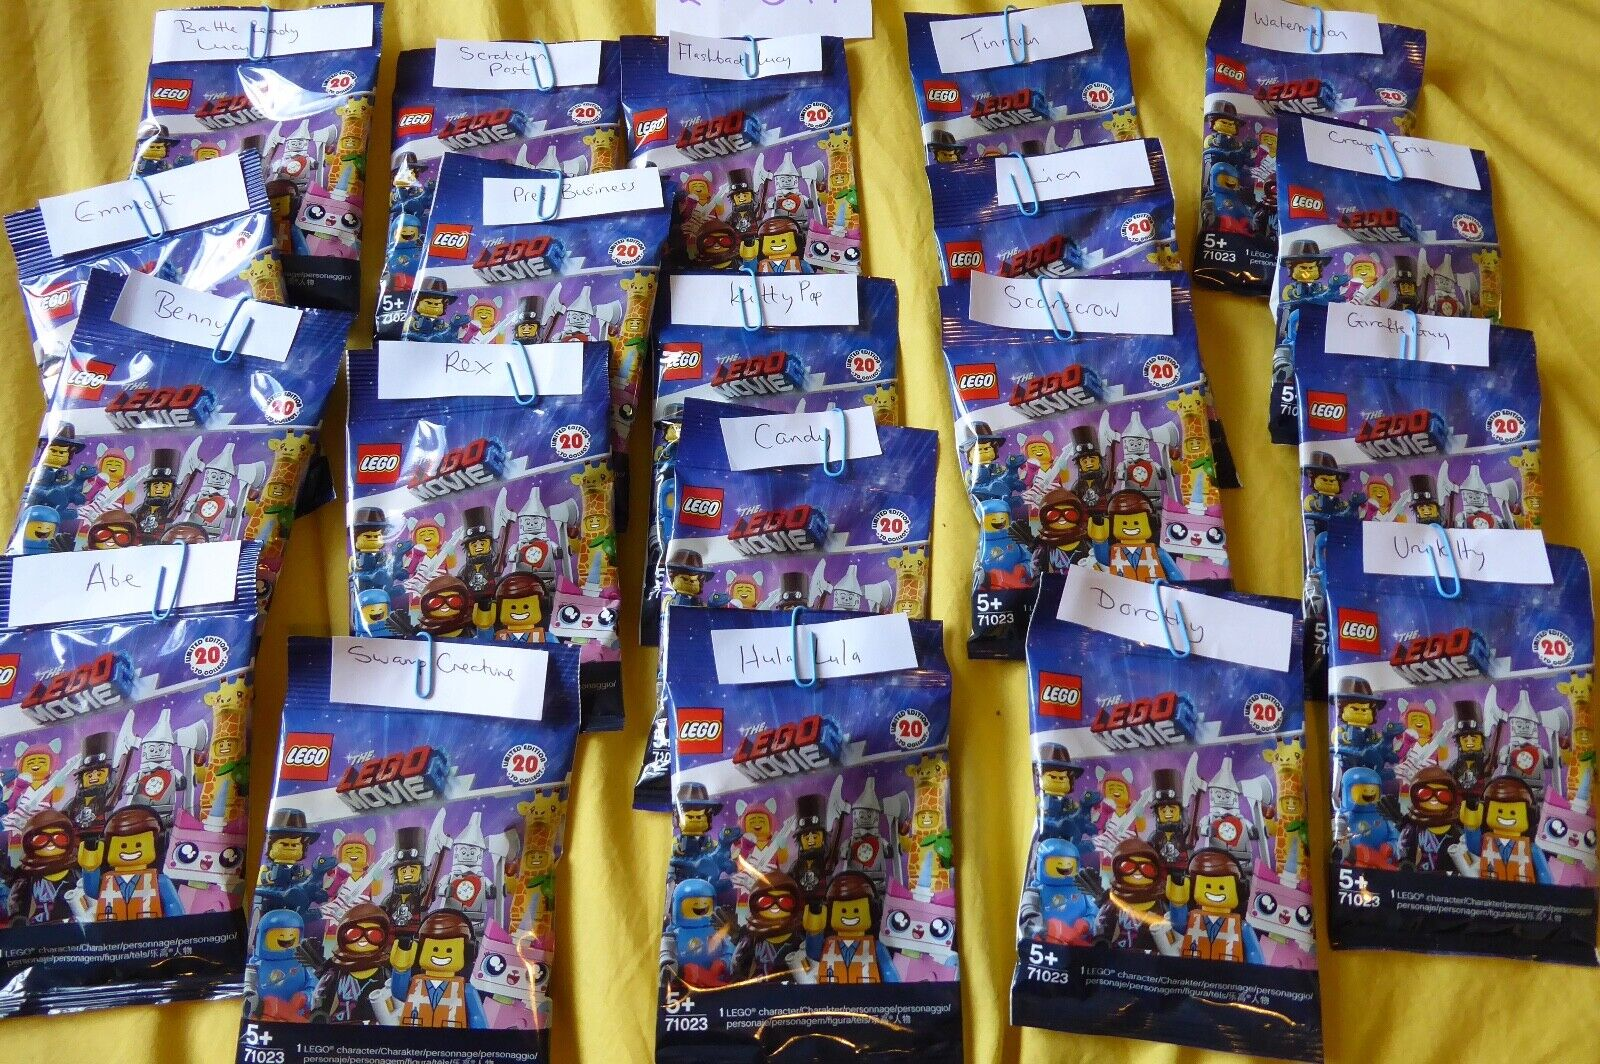 The Lego Movie 2 - Complete set of Collectible Minifigures - Unopened.